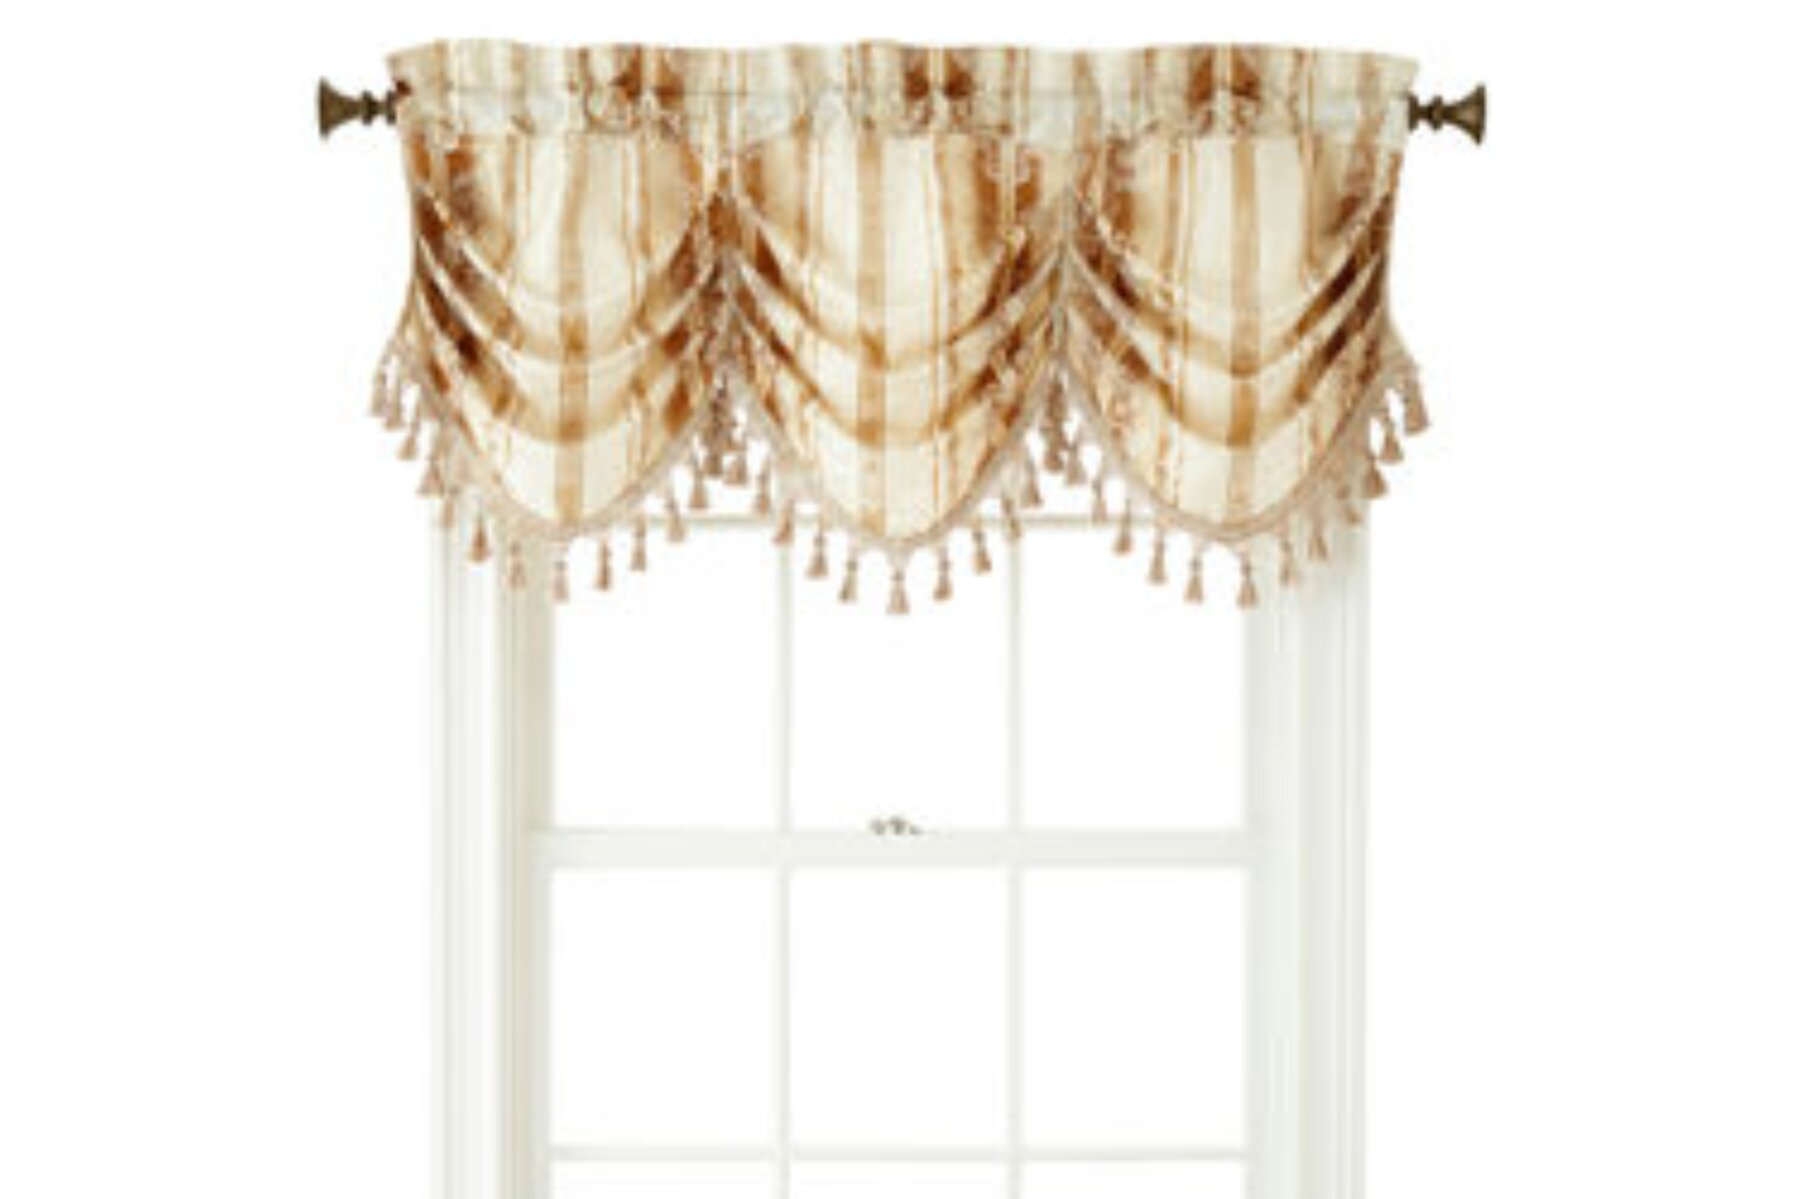 jcpenney home regan rod pocket tuck valance dimensions 20 inches width x 54 inches length gold dust multi